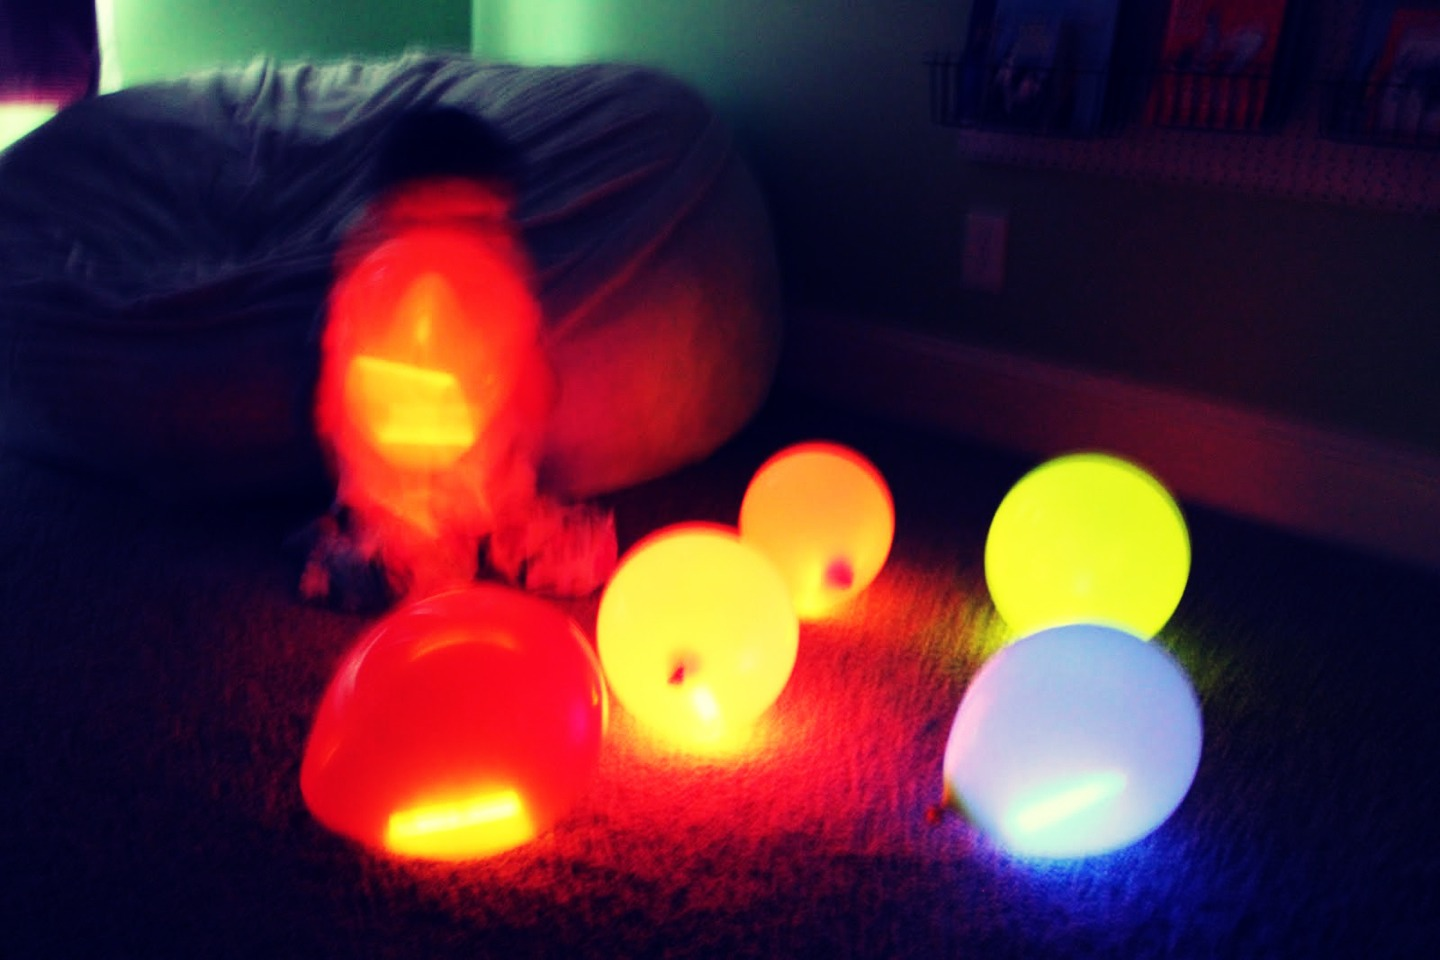 Glow in the dark water balloons - First Break A Glow Stick Then Take The Liquid That S Inside And Pour It Into